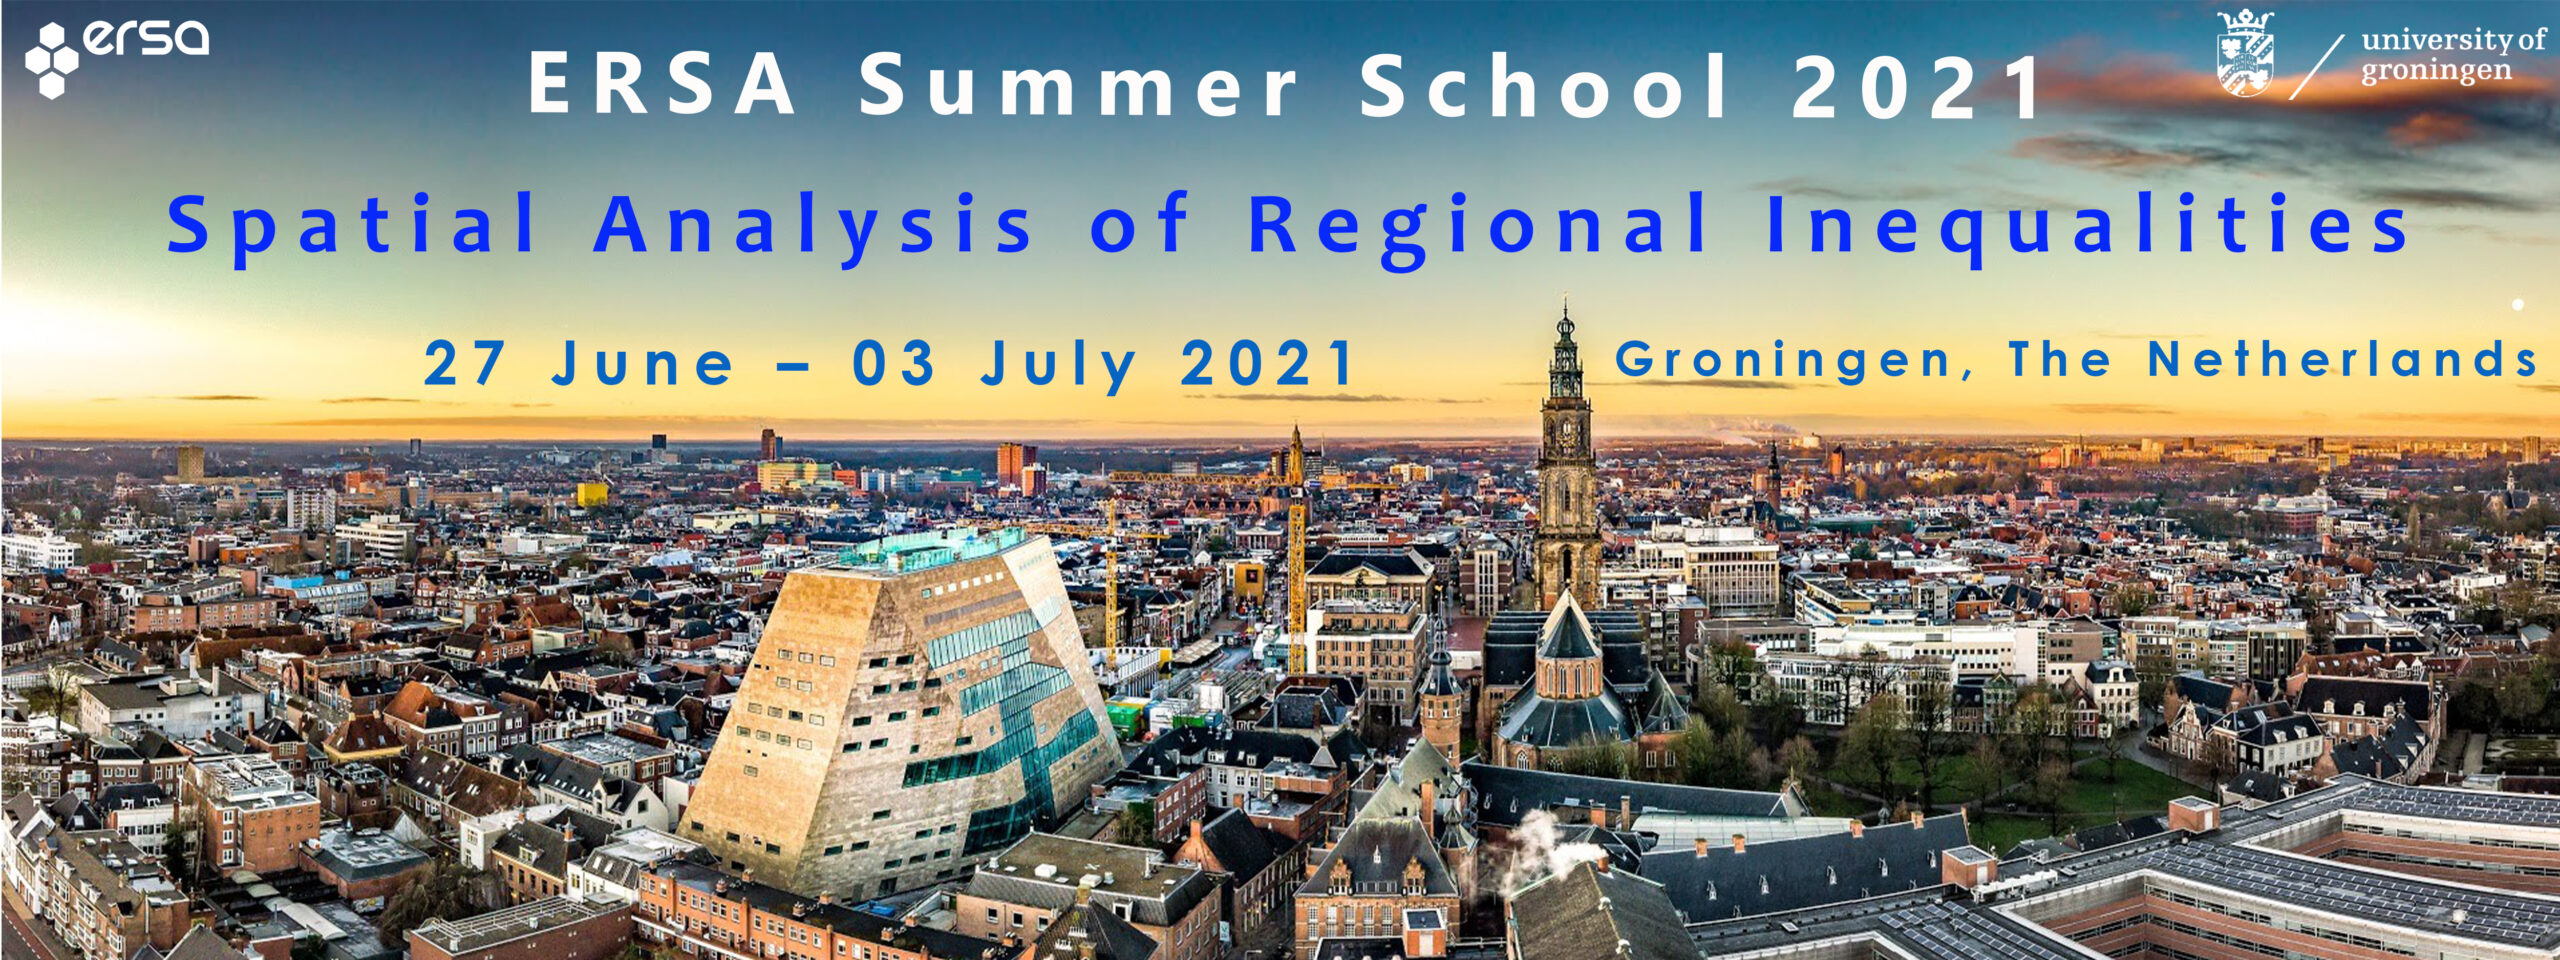 34th ERSA Summer School